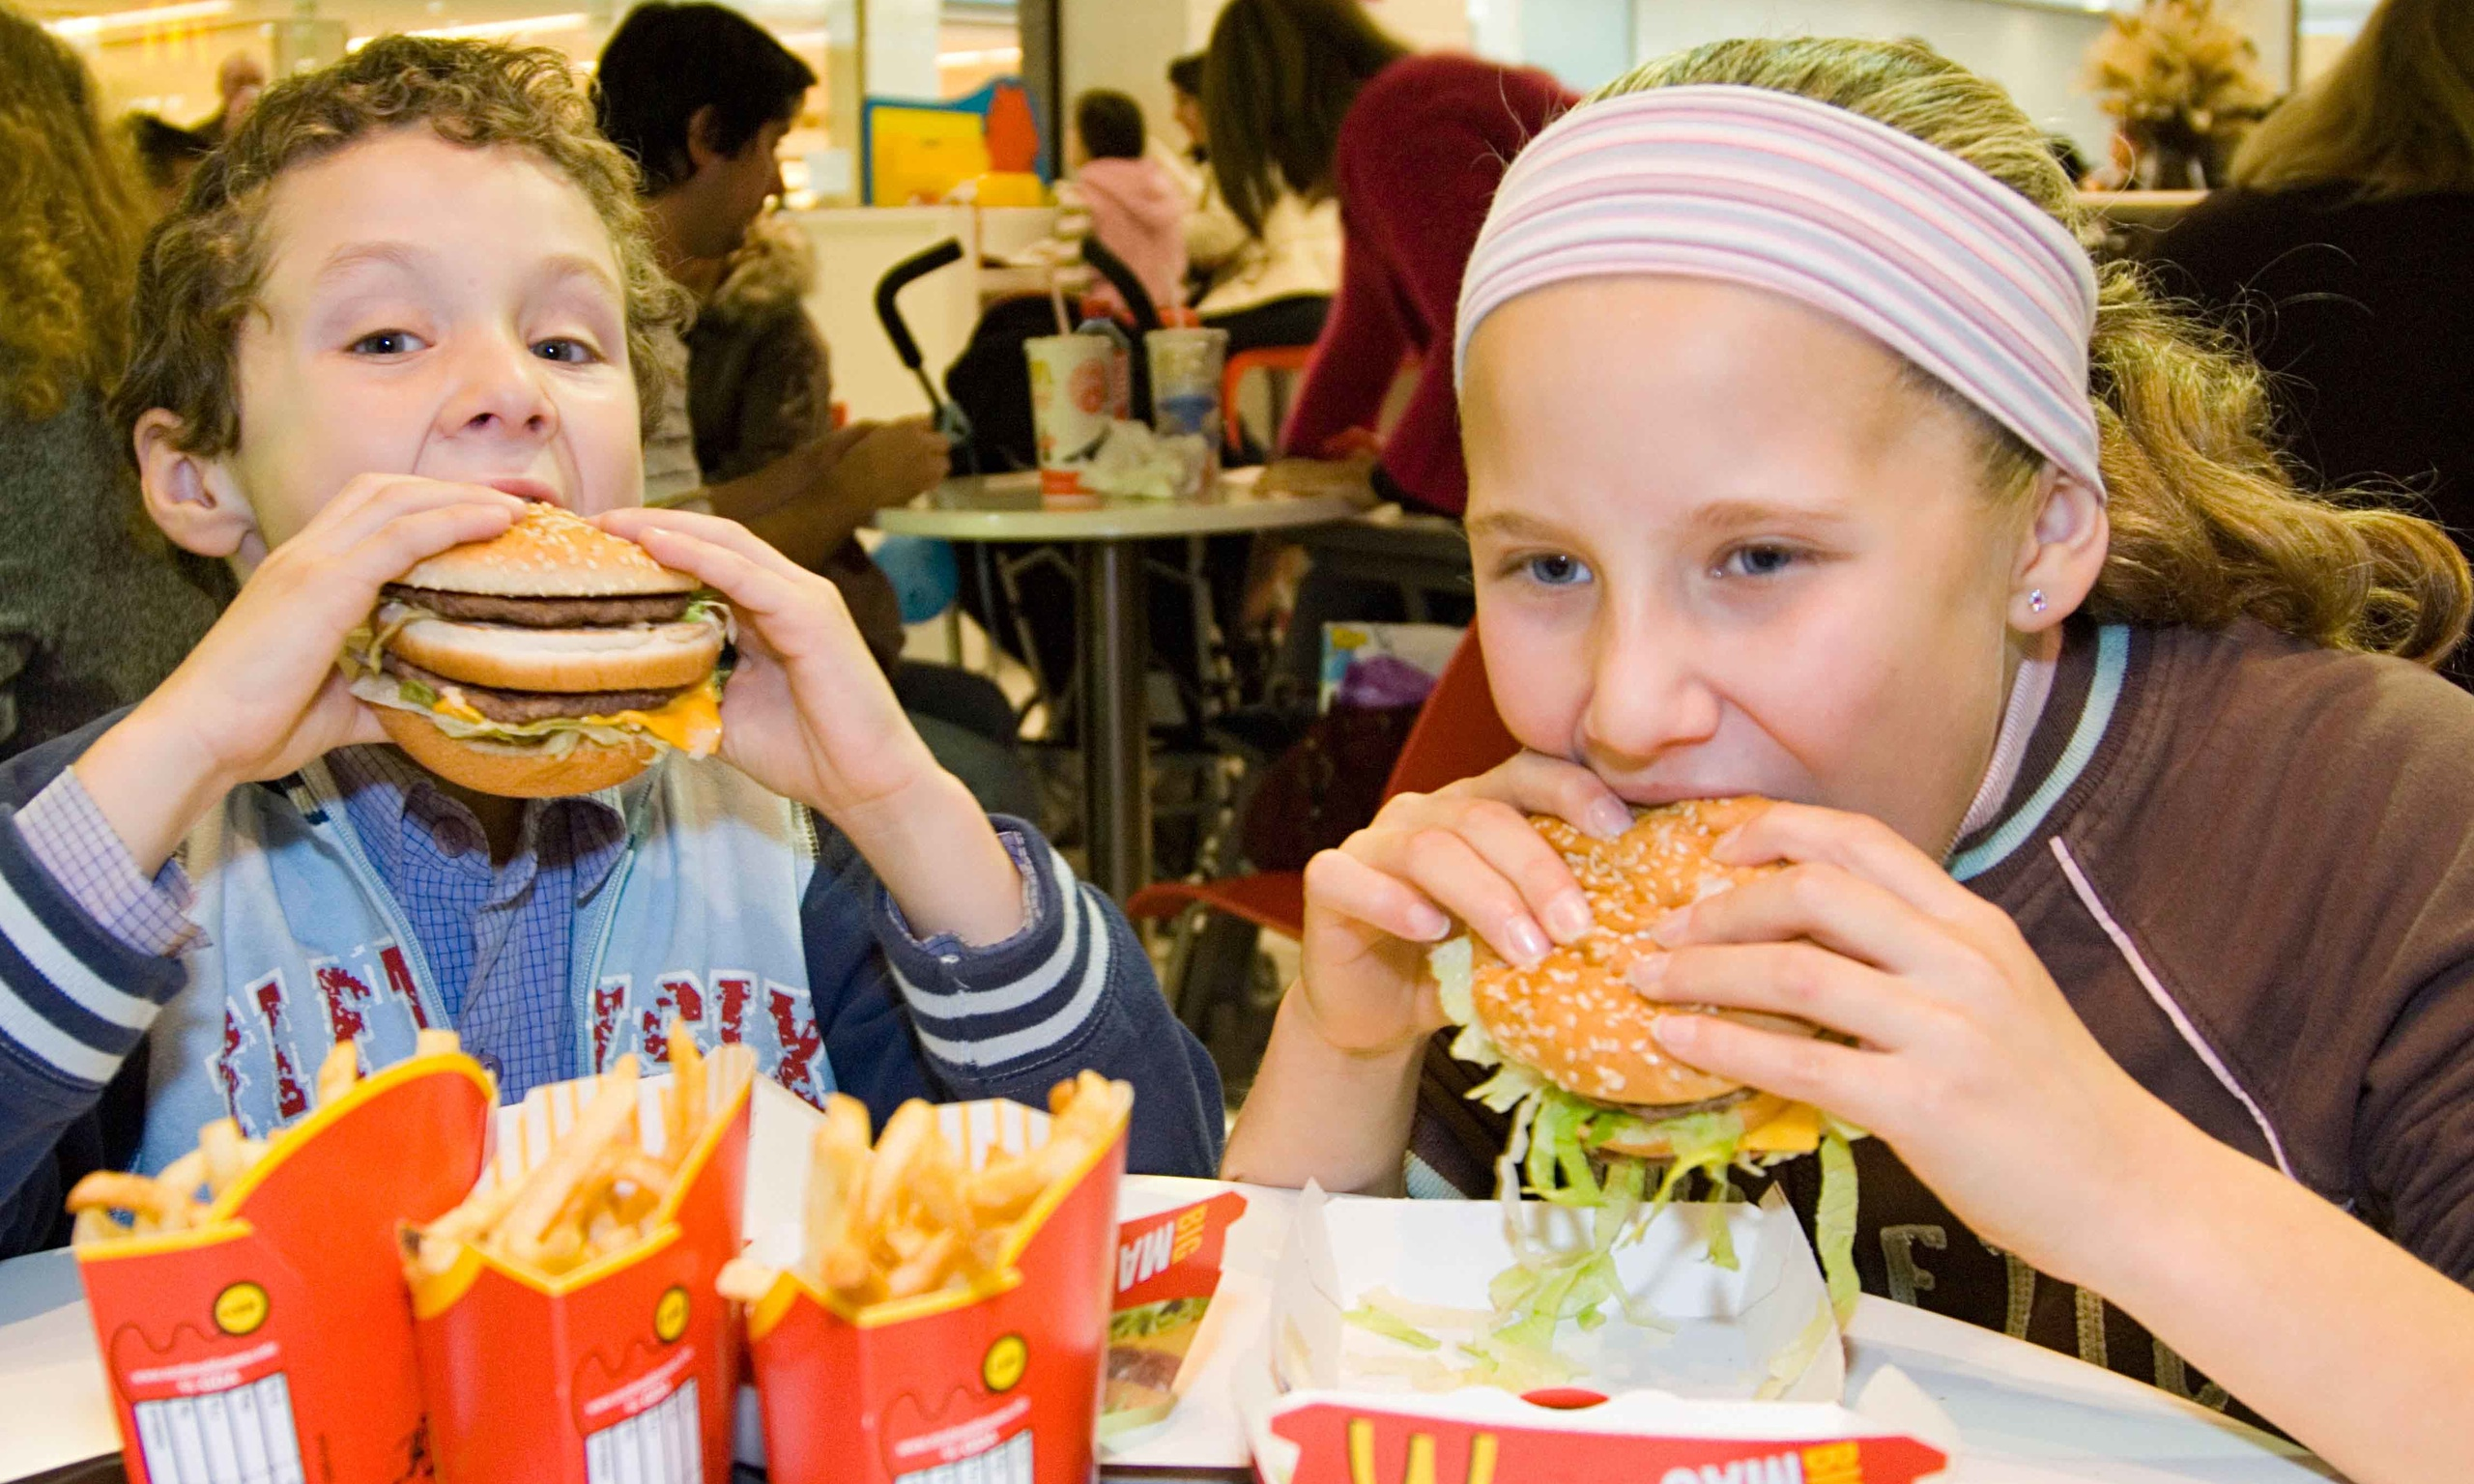 Mcdonalds Happy Meal Adverts Dont Help Children Choose Healthy Food